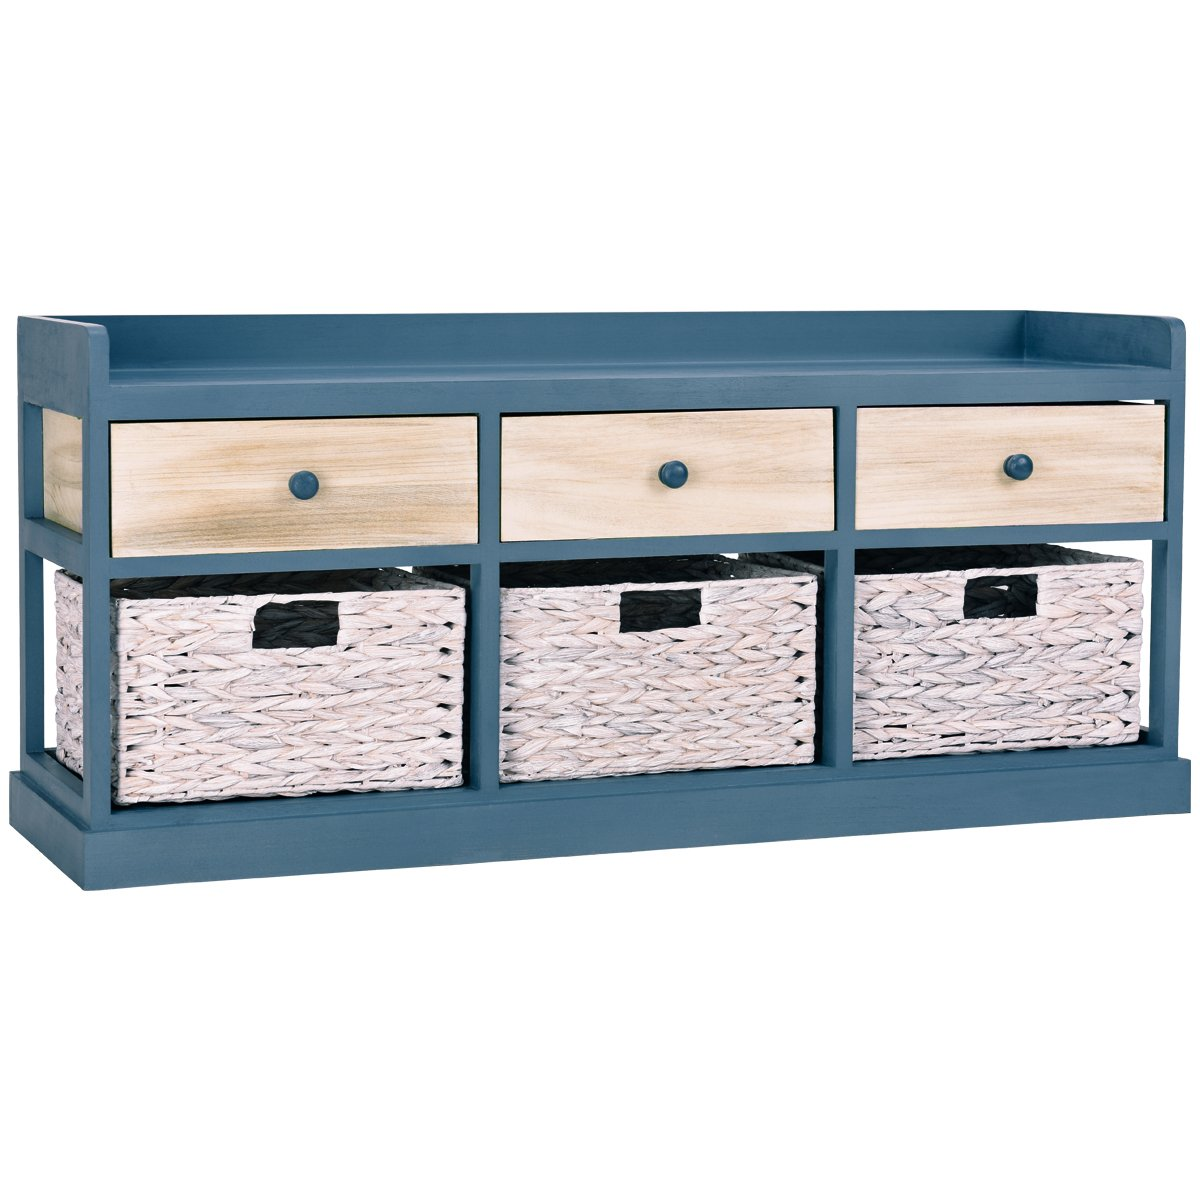 giantex end table drawers and baskets beside accent with nightstand wood drawer cabinet home office collection solid storage organizer half moon occasional uttermost dice red barn